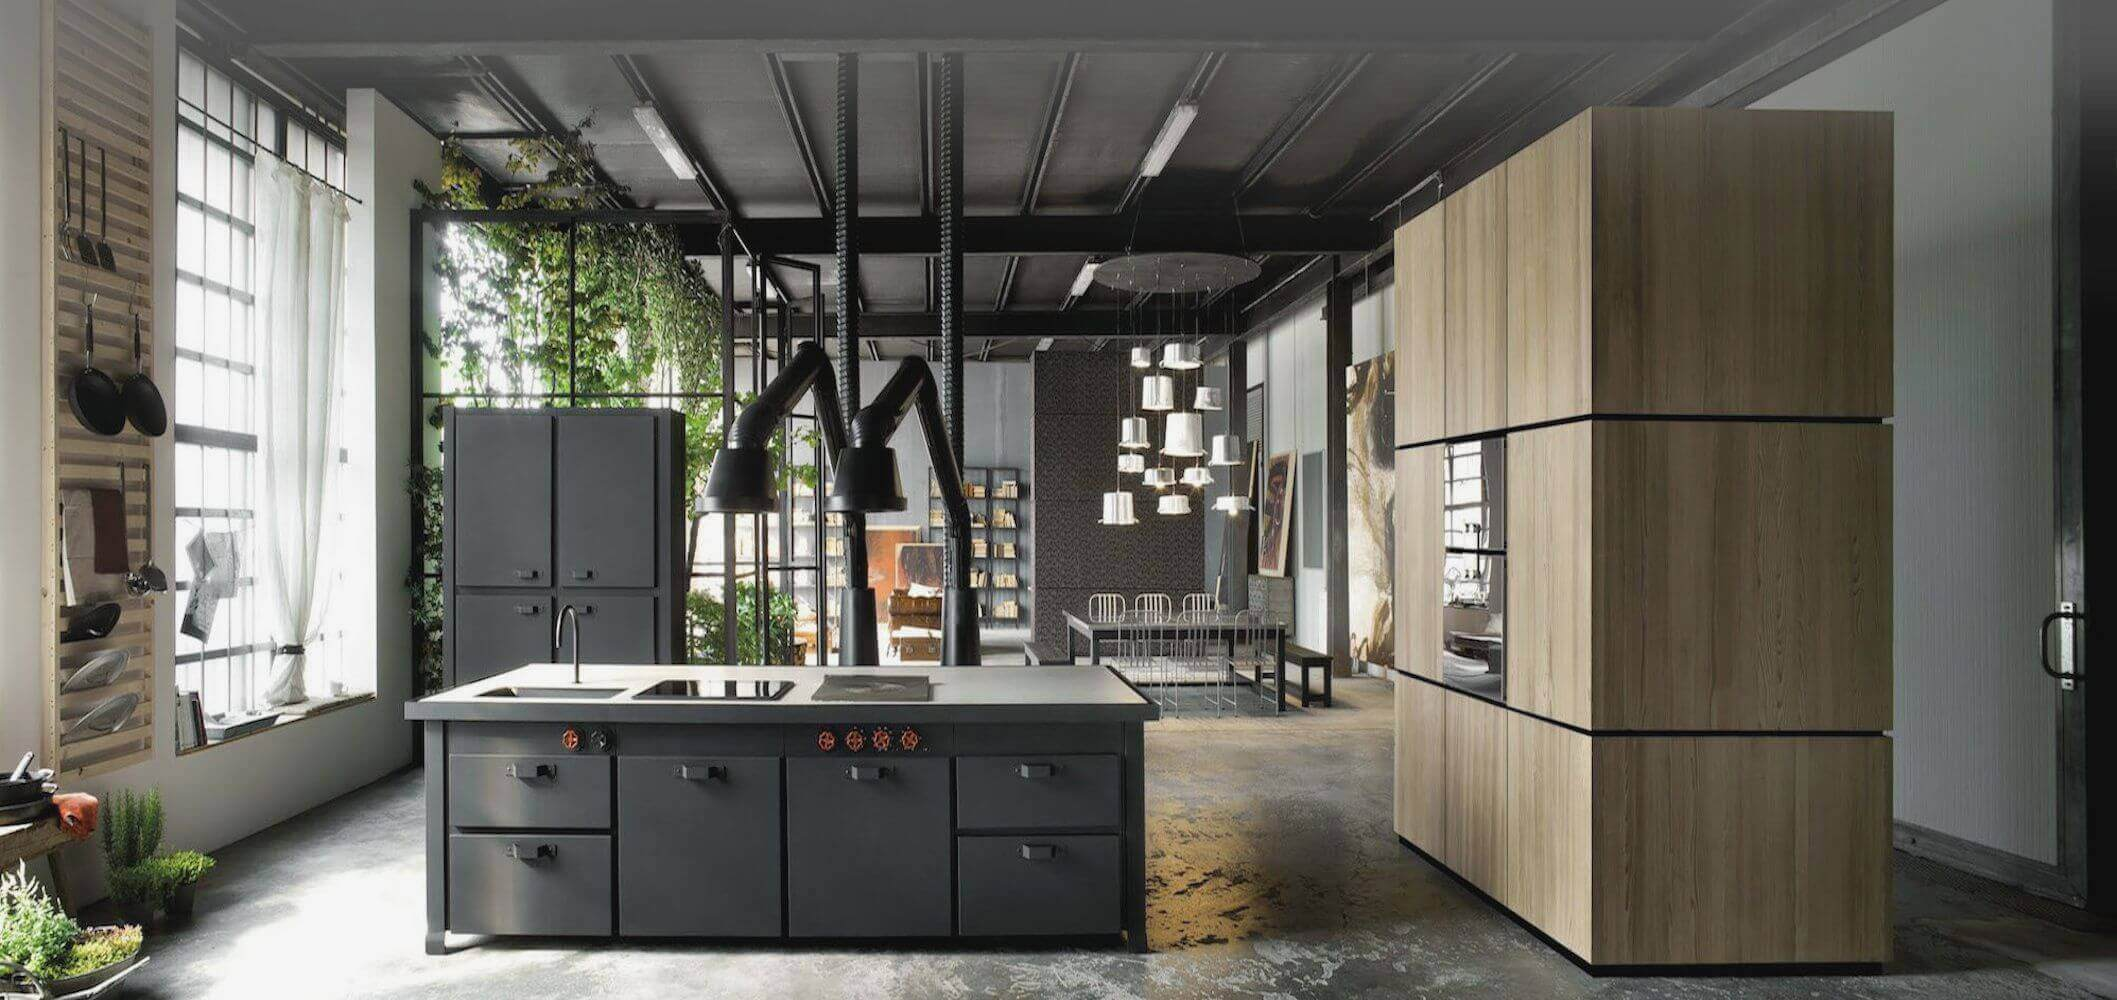 74 kitchen design gallery the ultimate solution to for Industrial modern kitchen designs